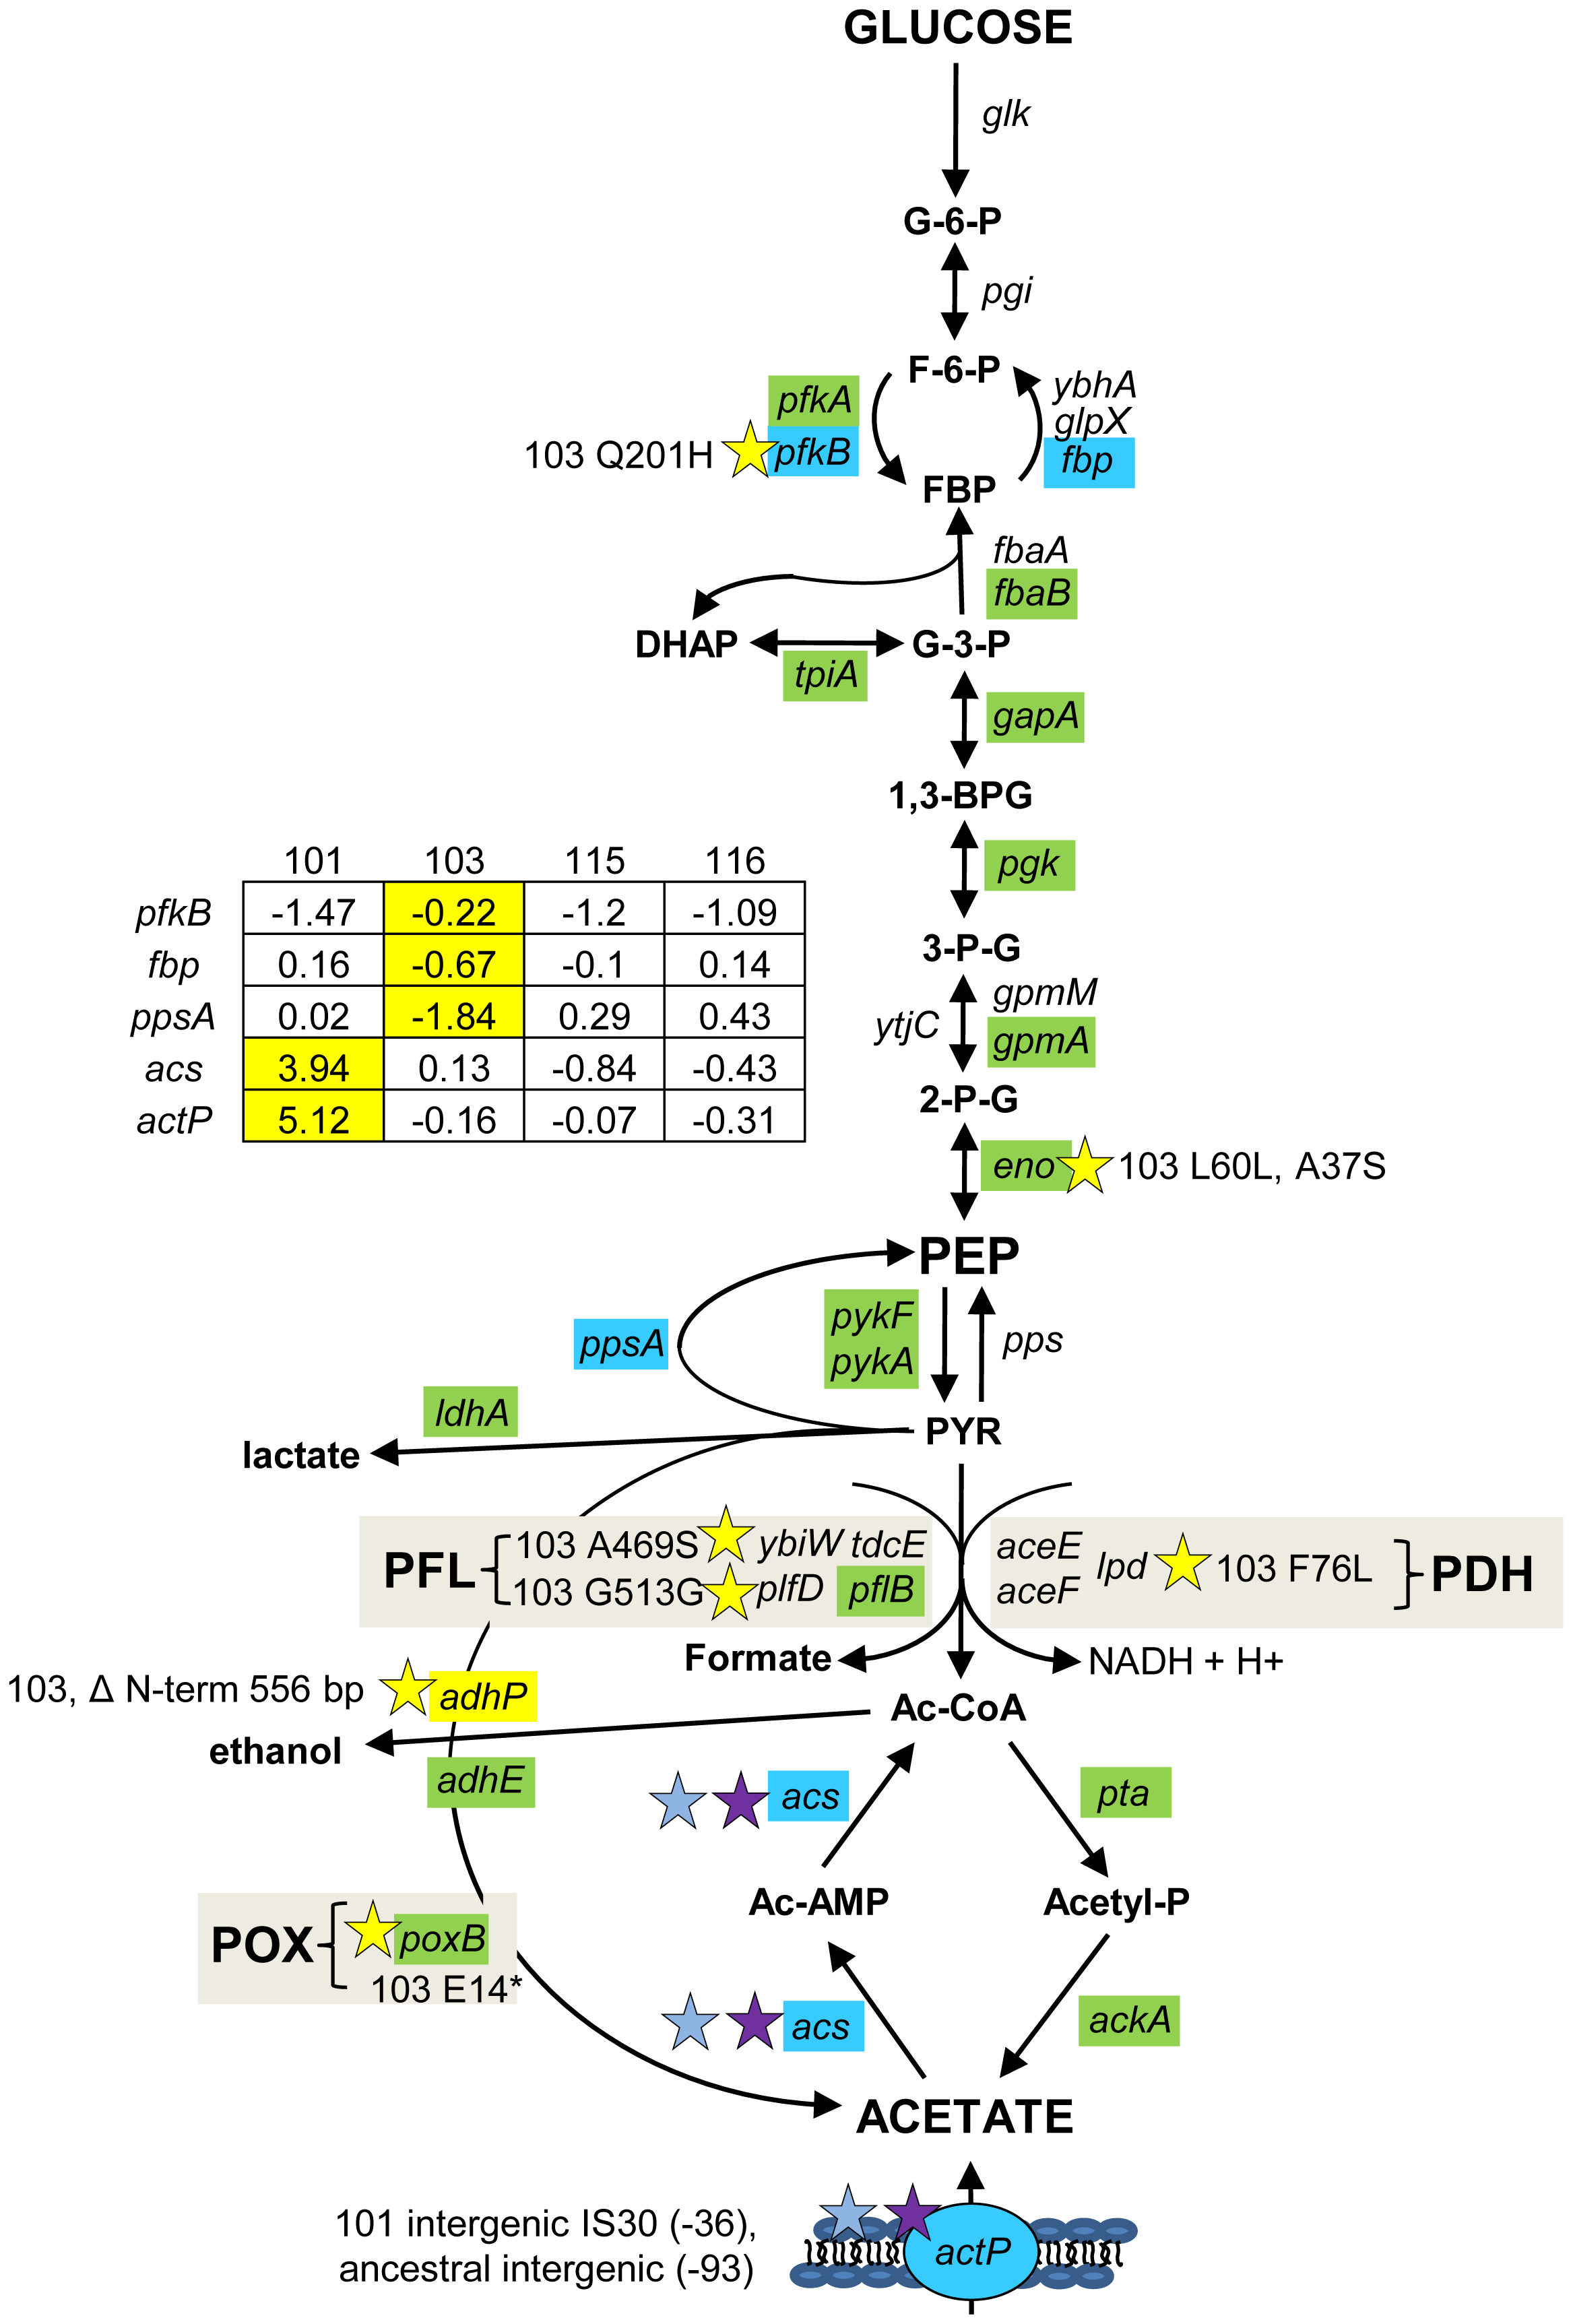 Gene expression and SNPs among loci that mediate glycolysis and fermentation.